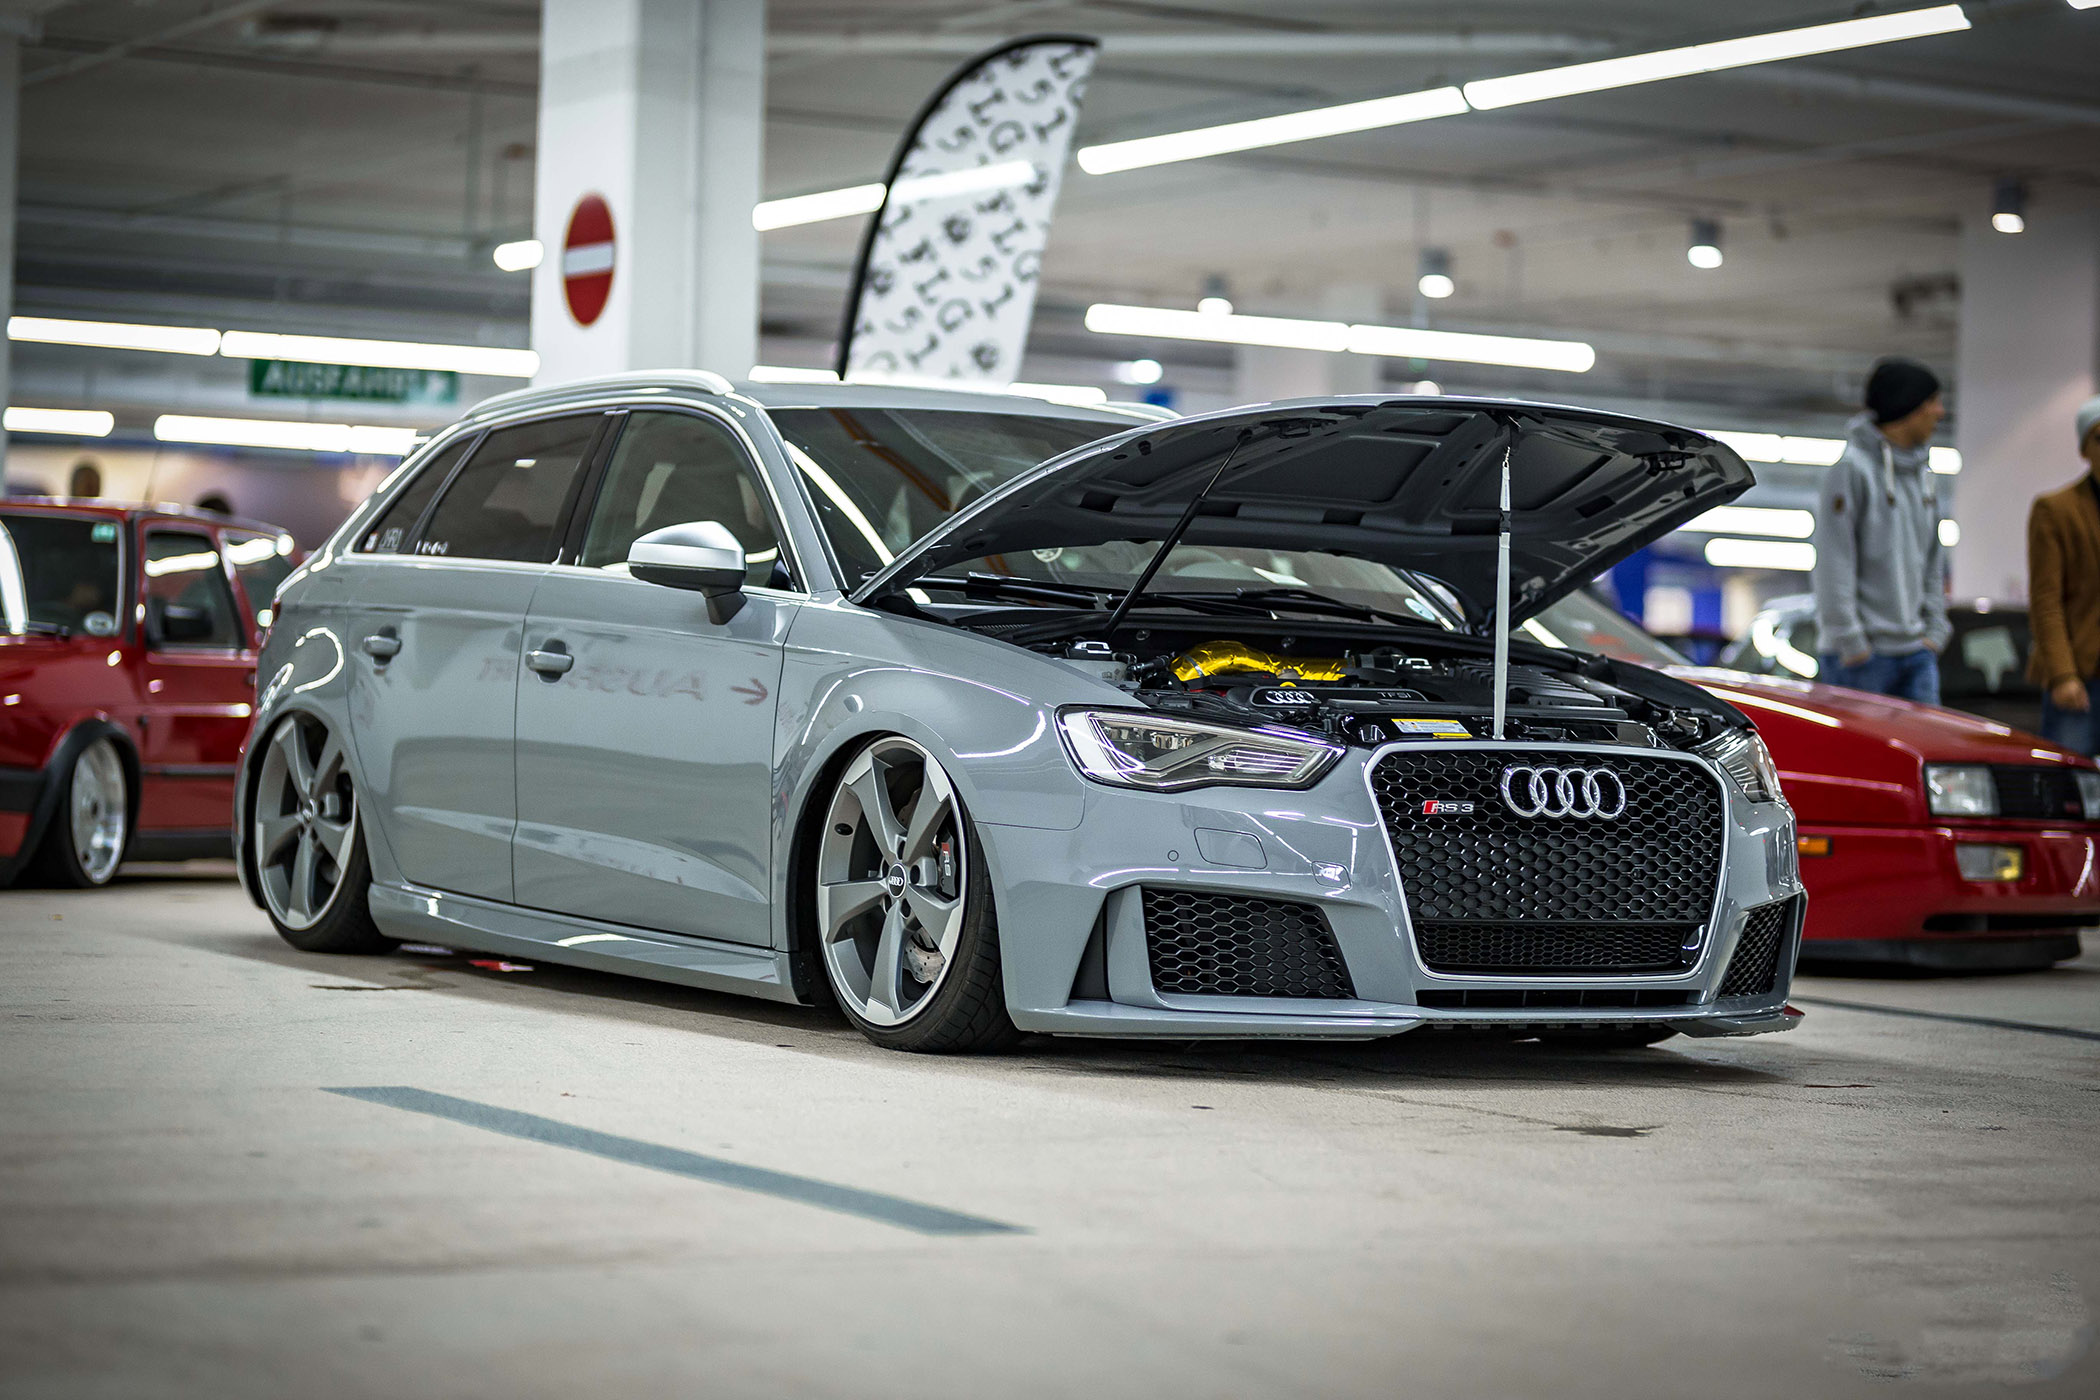 Audi_s3_Automotive_Photography